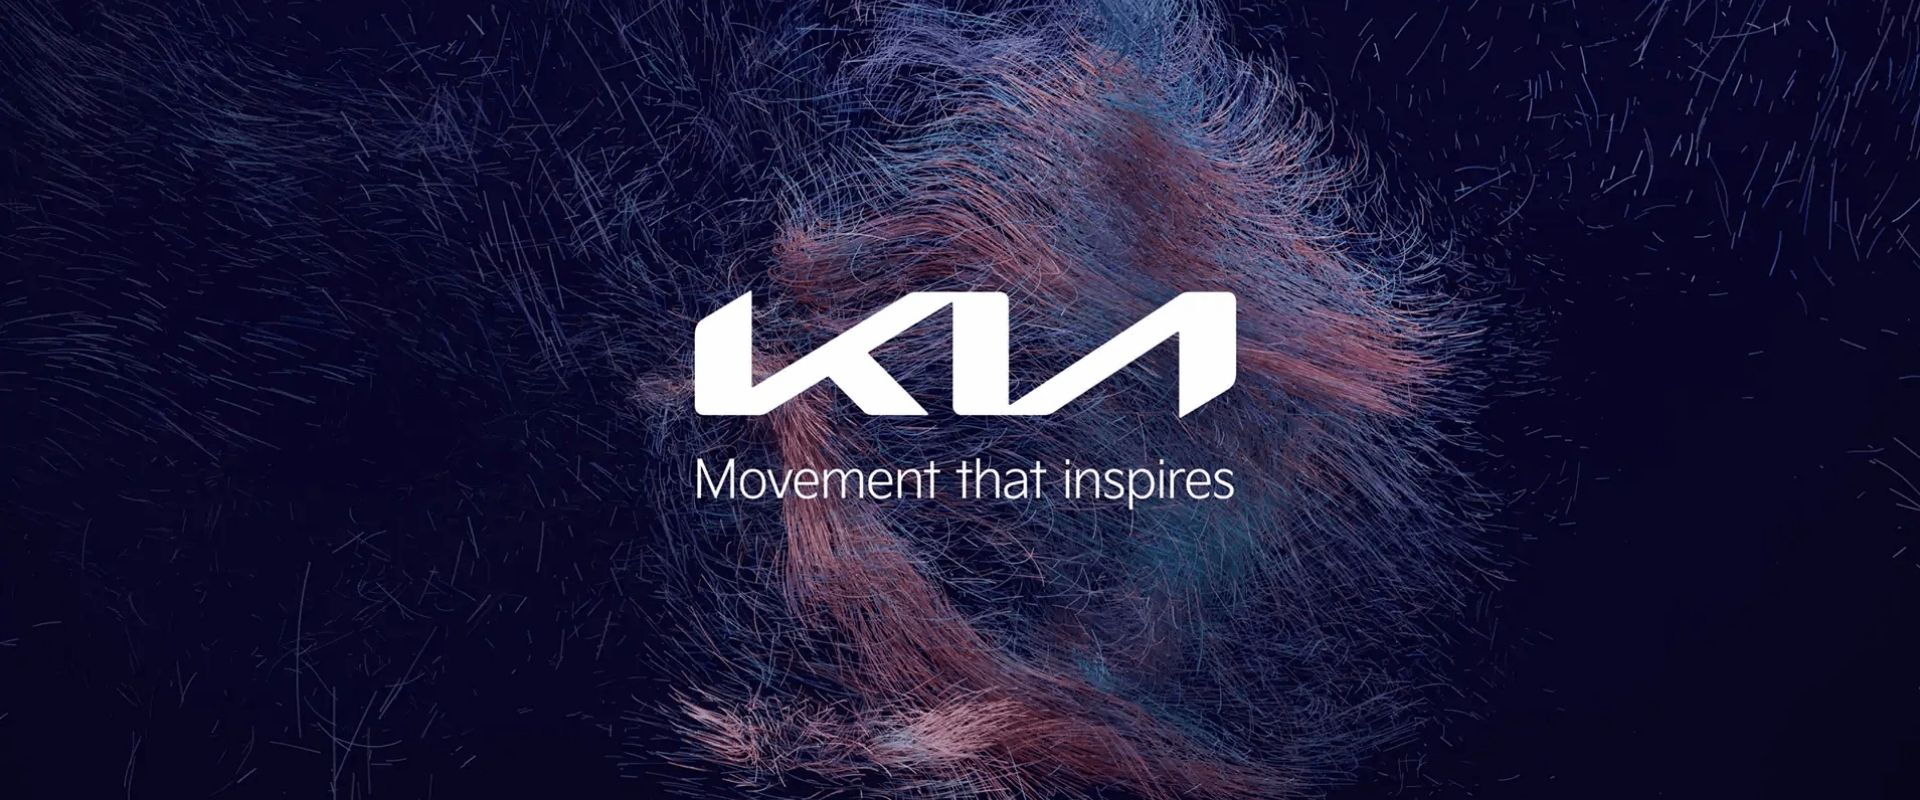 Kia. Movement that Inspires